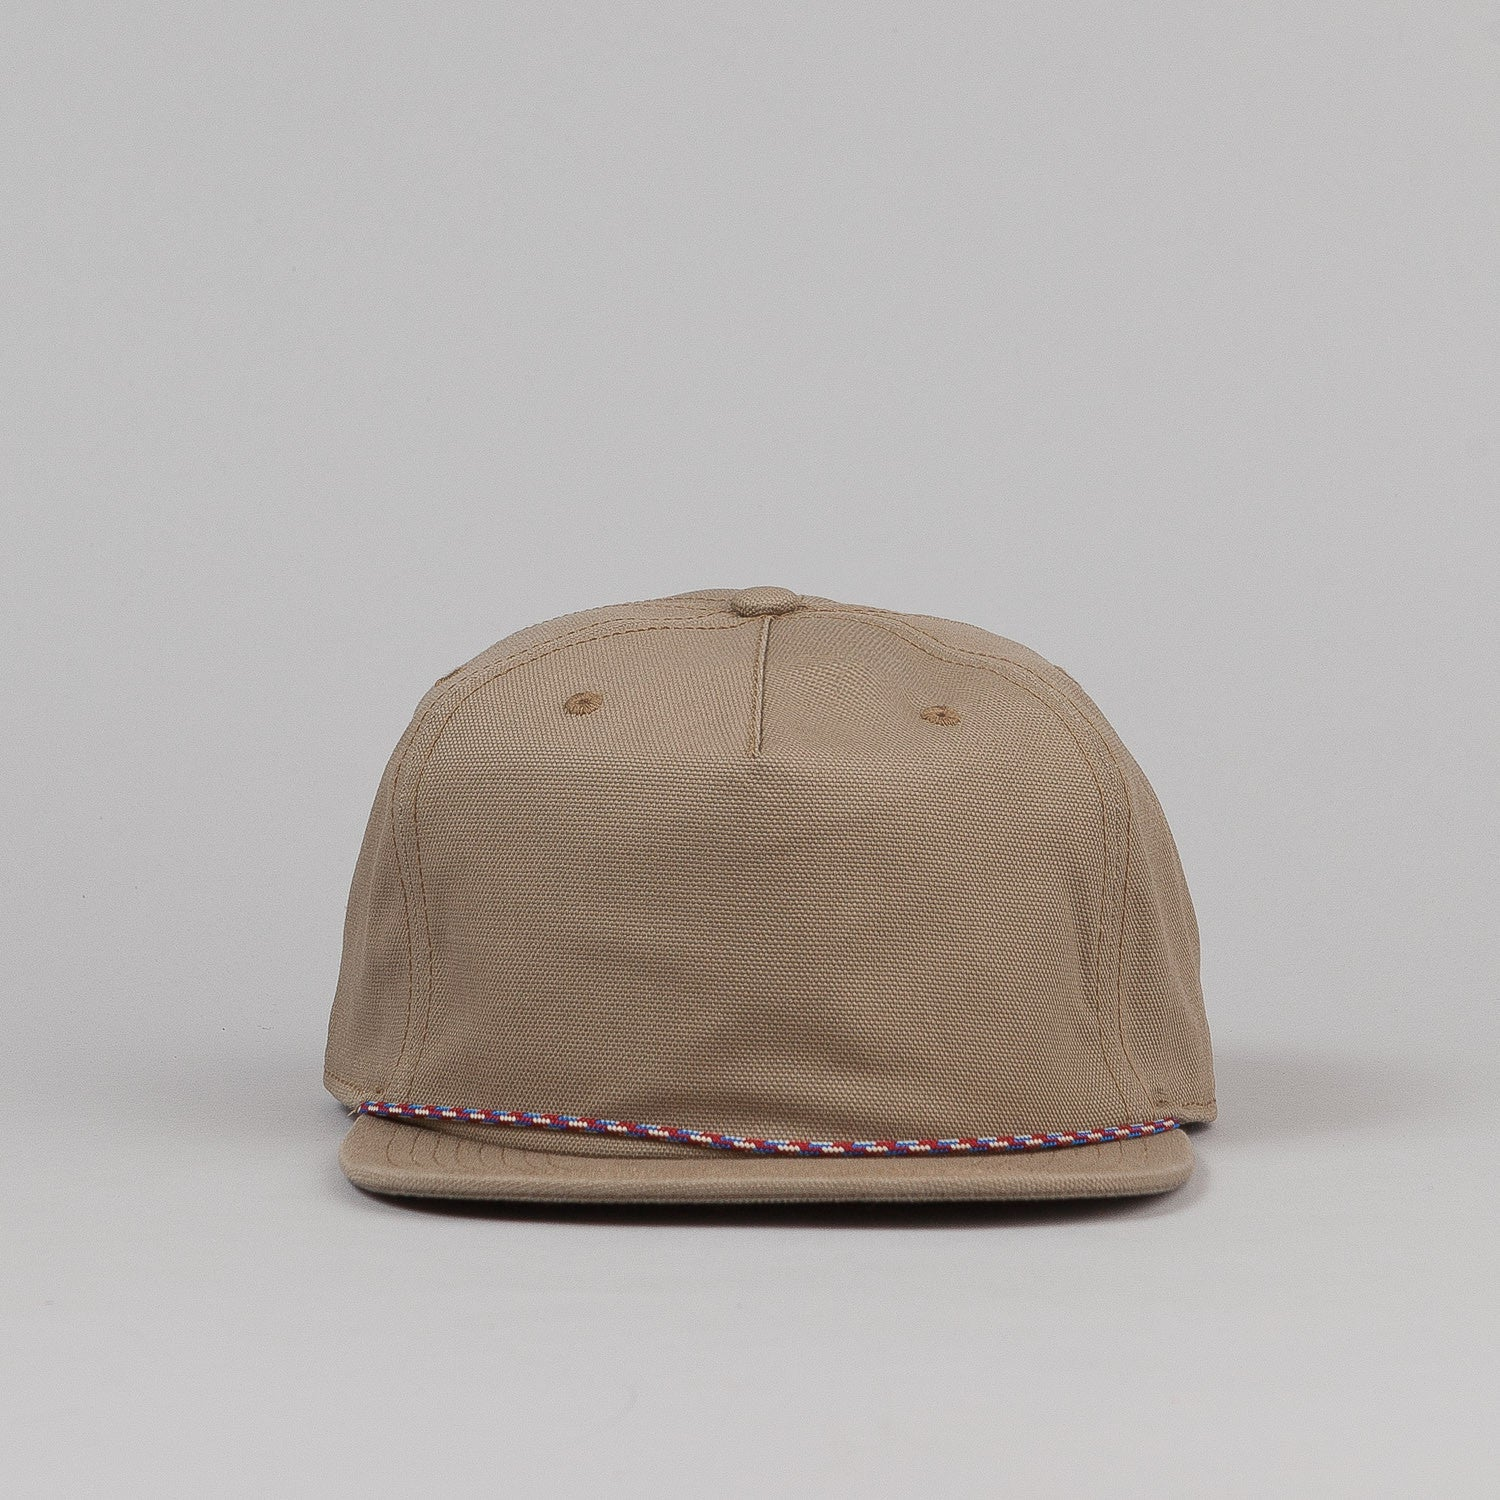 Patagonia Stand Up Cap - Ash Tan